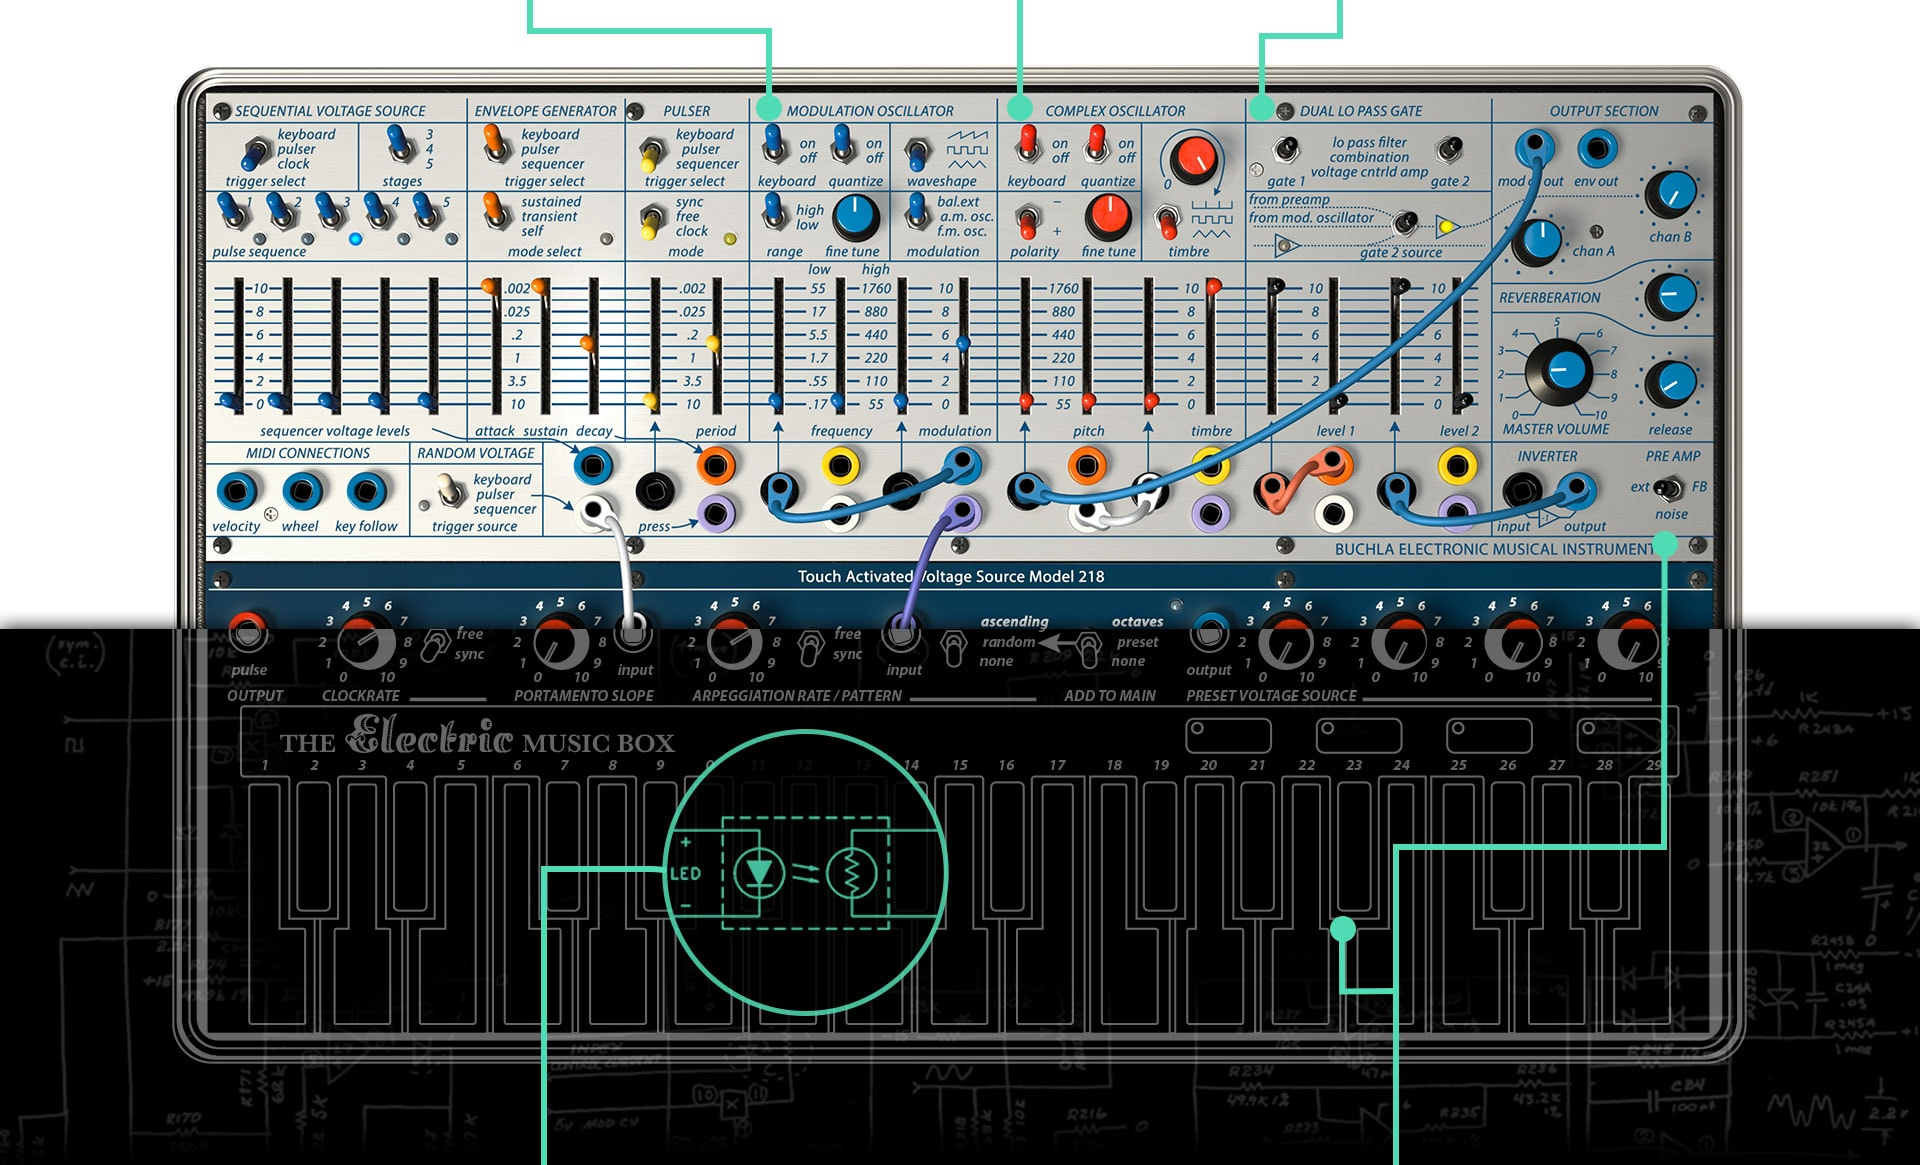 Arturia Details Audio Oscillators Gate 1 Is Hardwired To The Complex Oscillator You Can Switch 2 Process Preamps Output Modulation Or